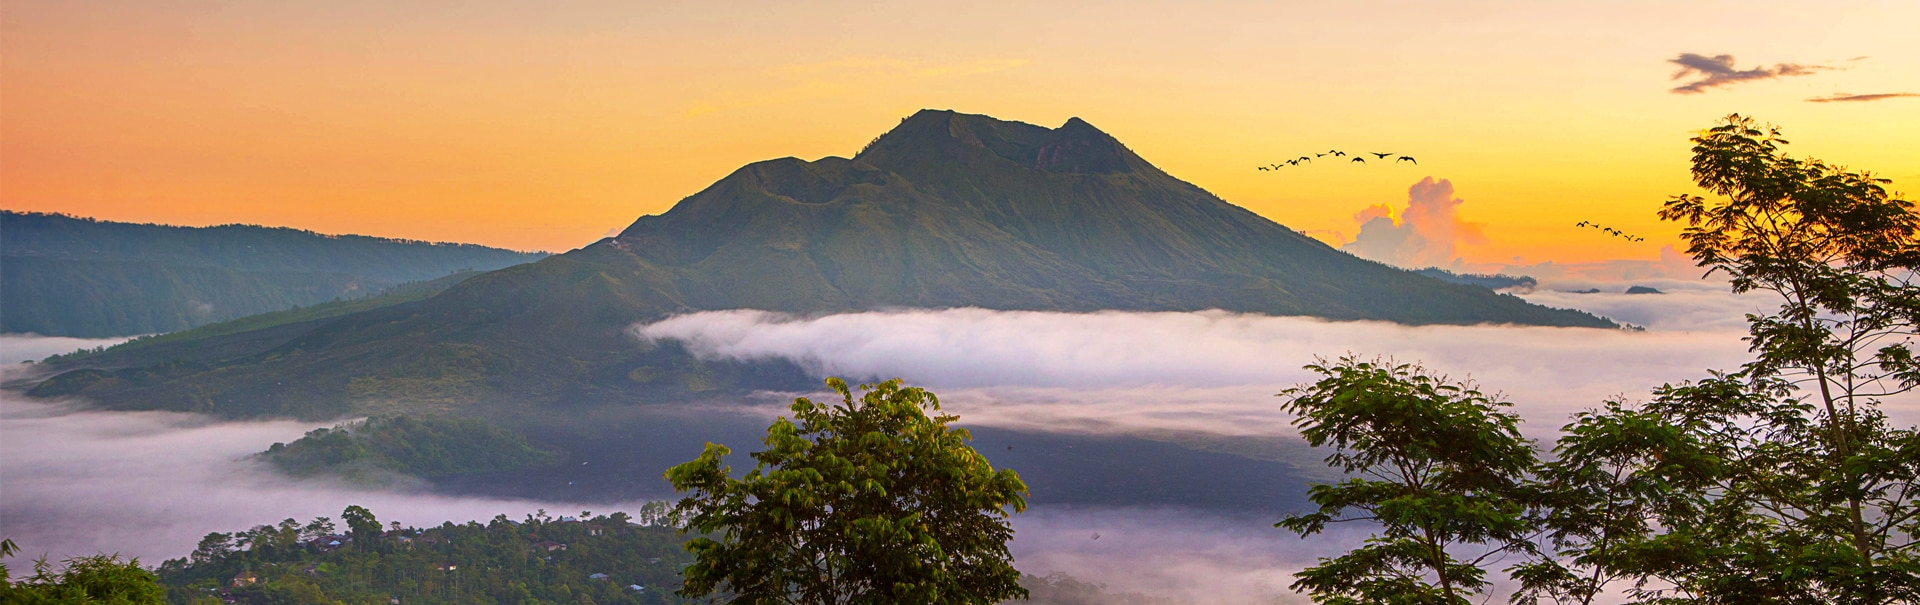 5 Days 4 Nights Romantic Bali Customized Holidays Tour Package